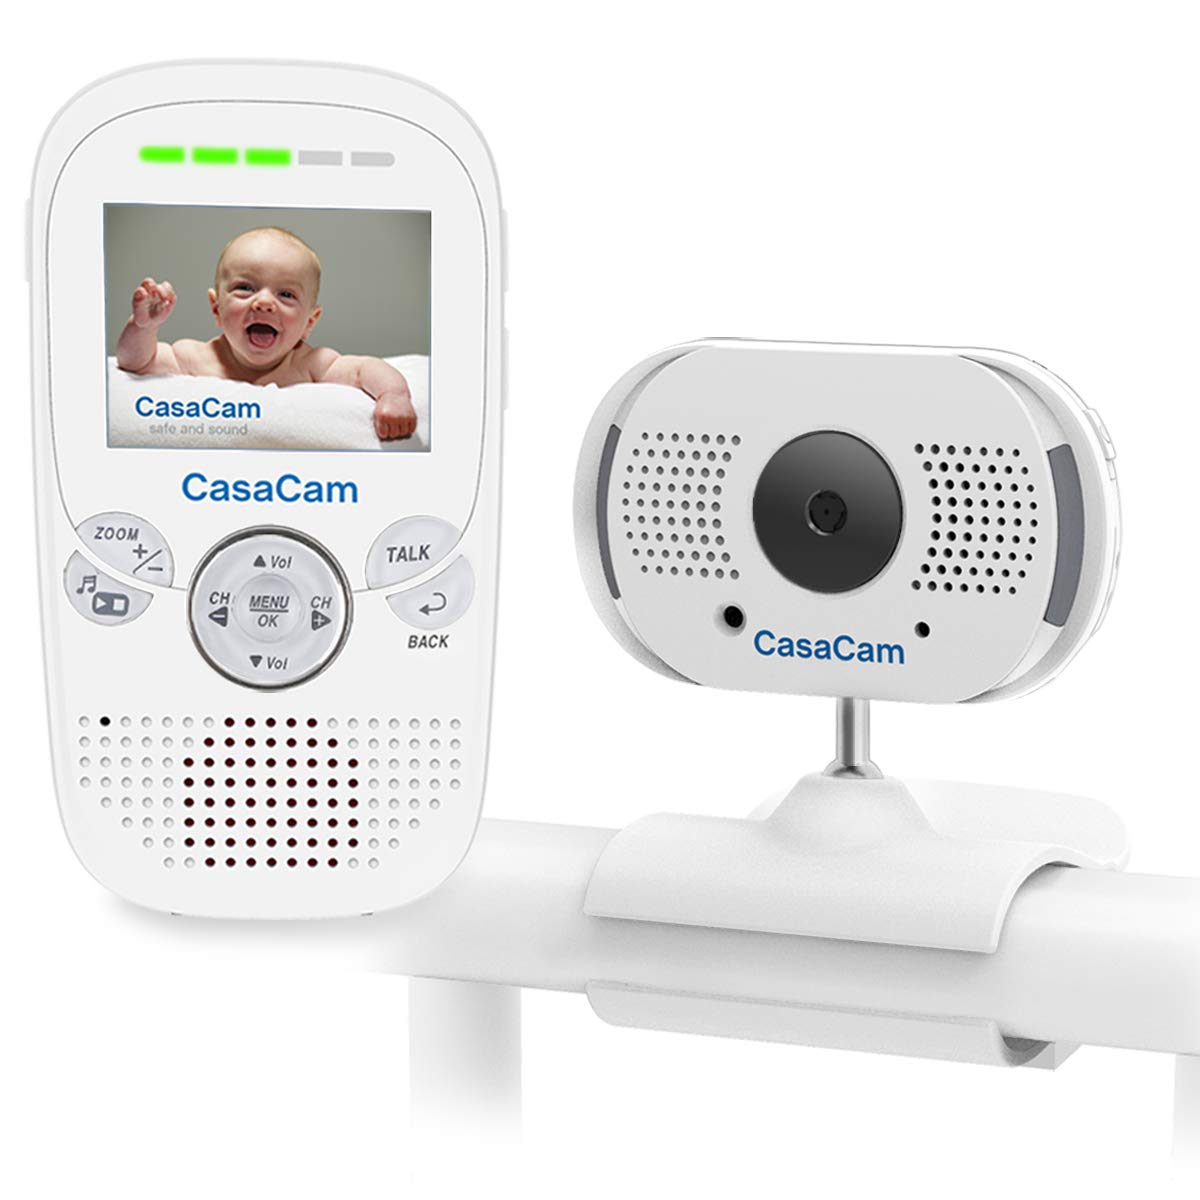 Safety Equipment Baby Sleeping Monitors 2.4ghz Wireless Baby Monitor Rechargeable Sound Digital Audio Baby Monitor Two-way Talk Intercom Vox Sound Detection Function Reputation First